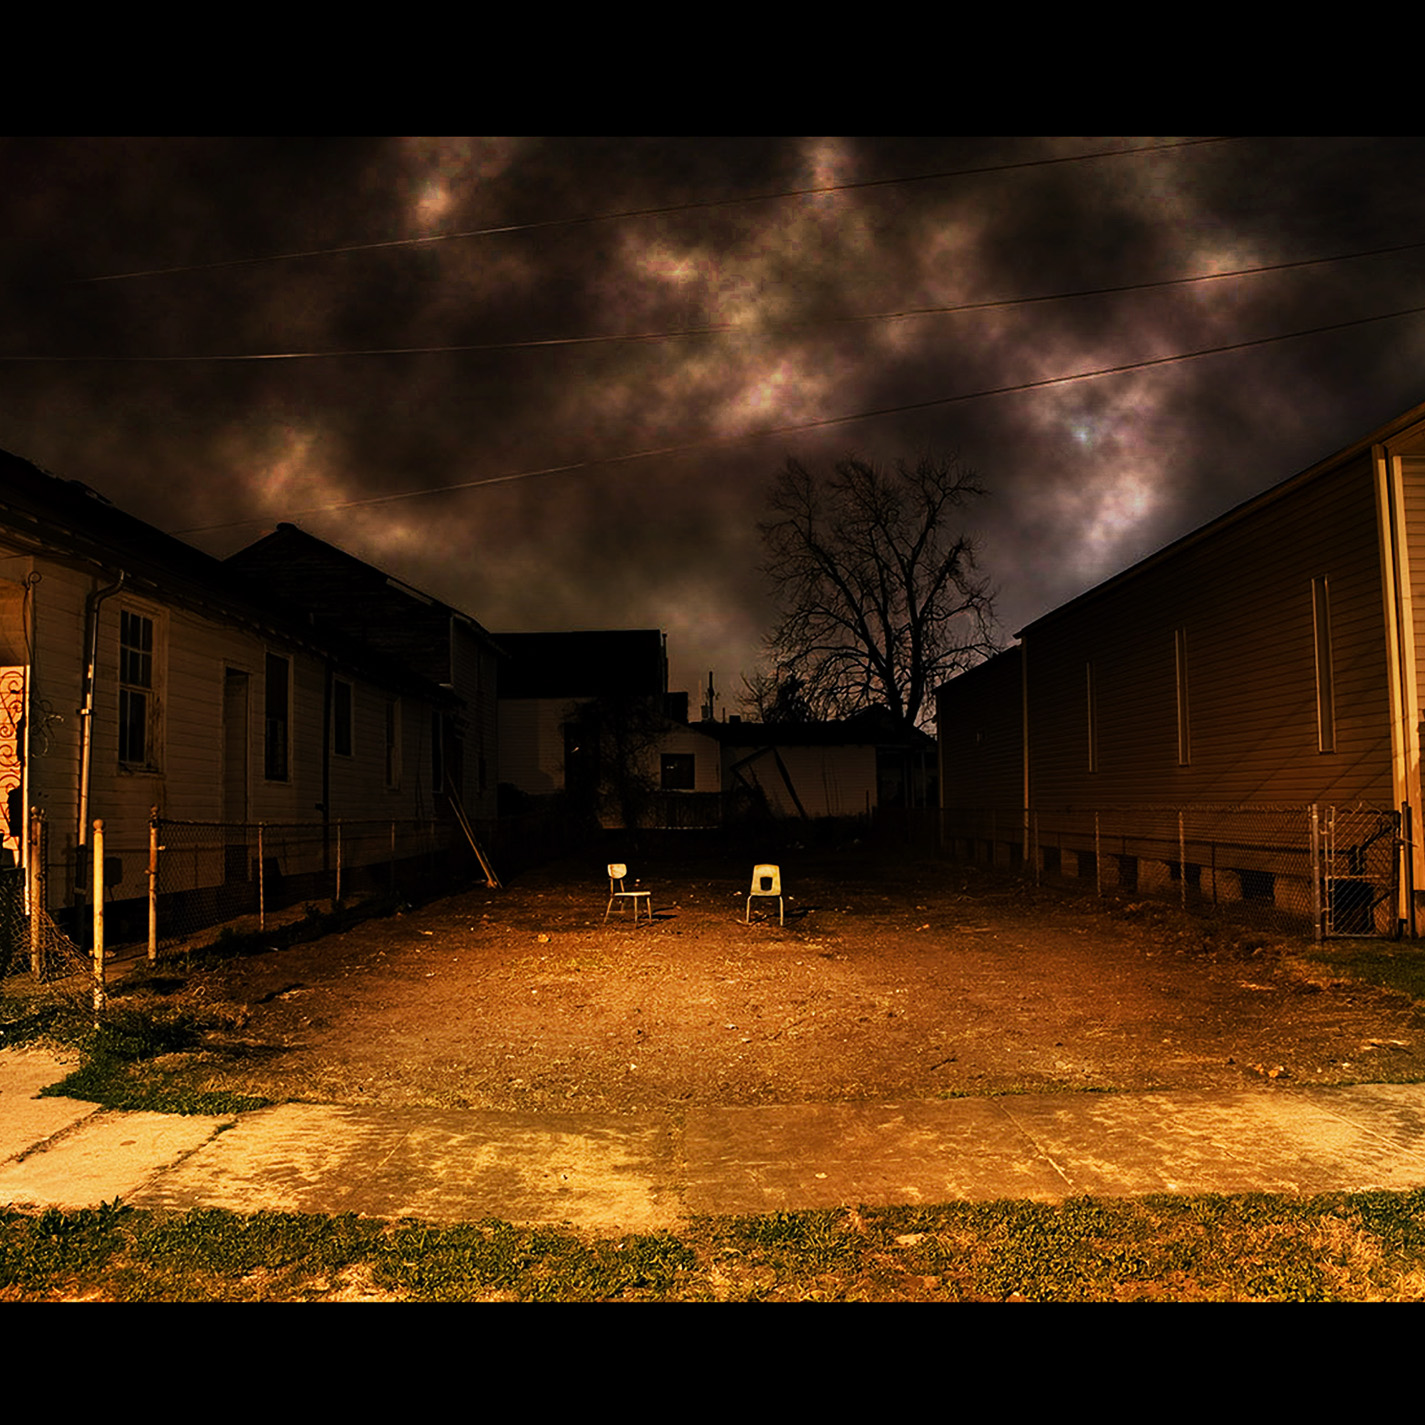 ghetto street backgrounds - photo #21